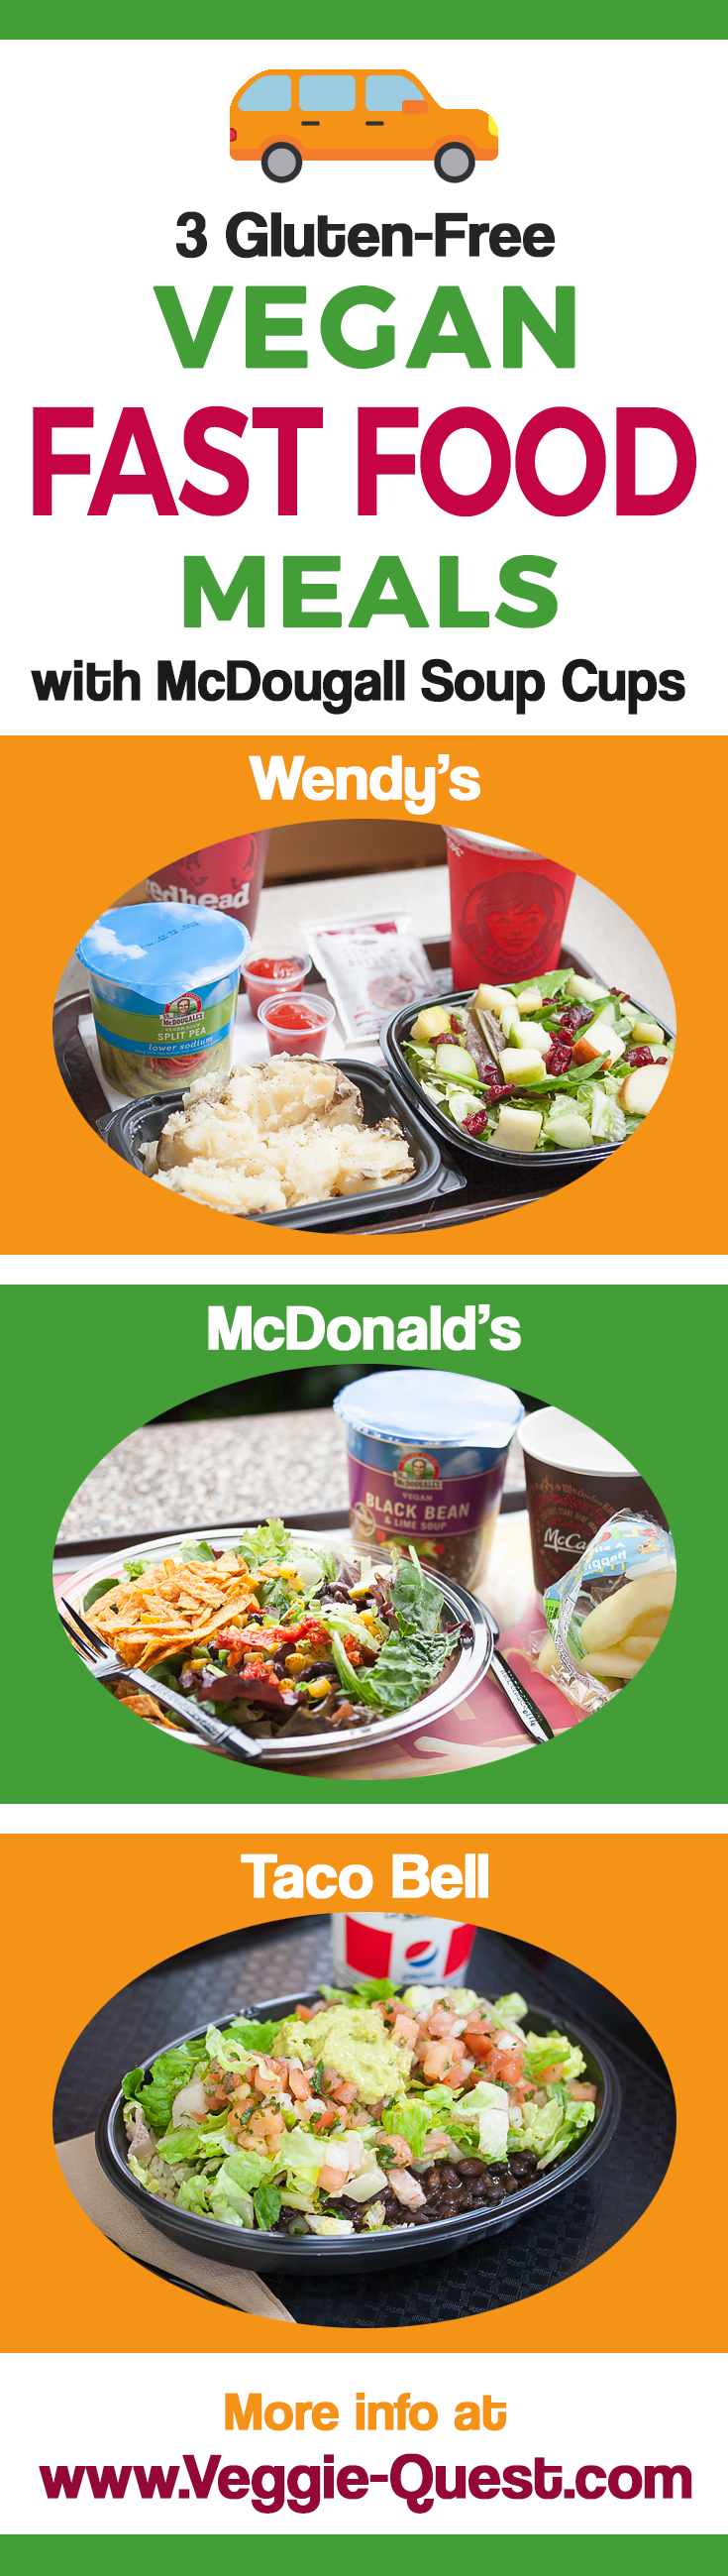 Fast Food Chains With Veggie Burgers